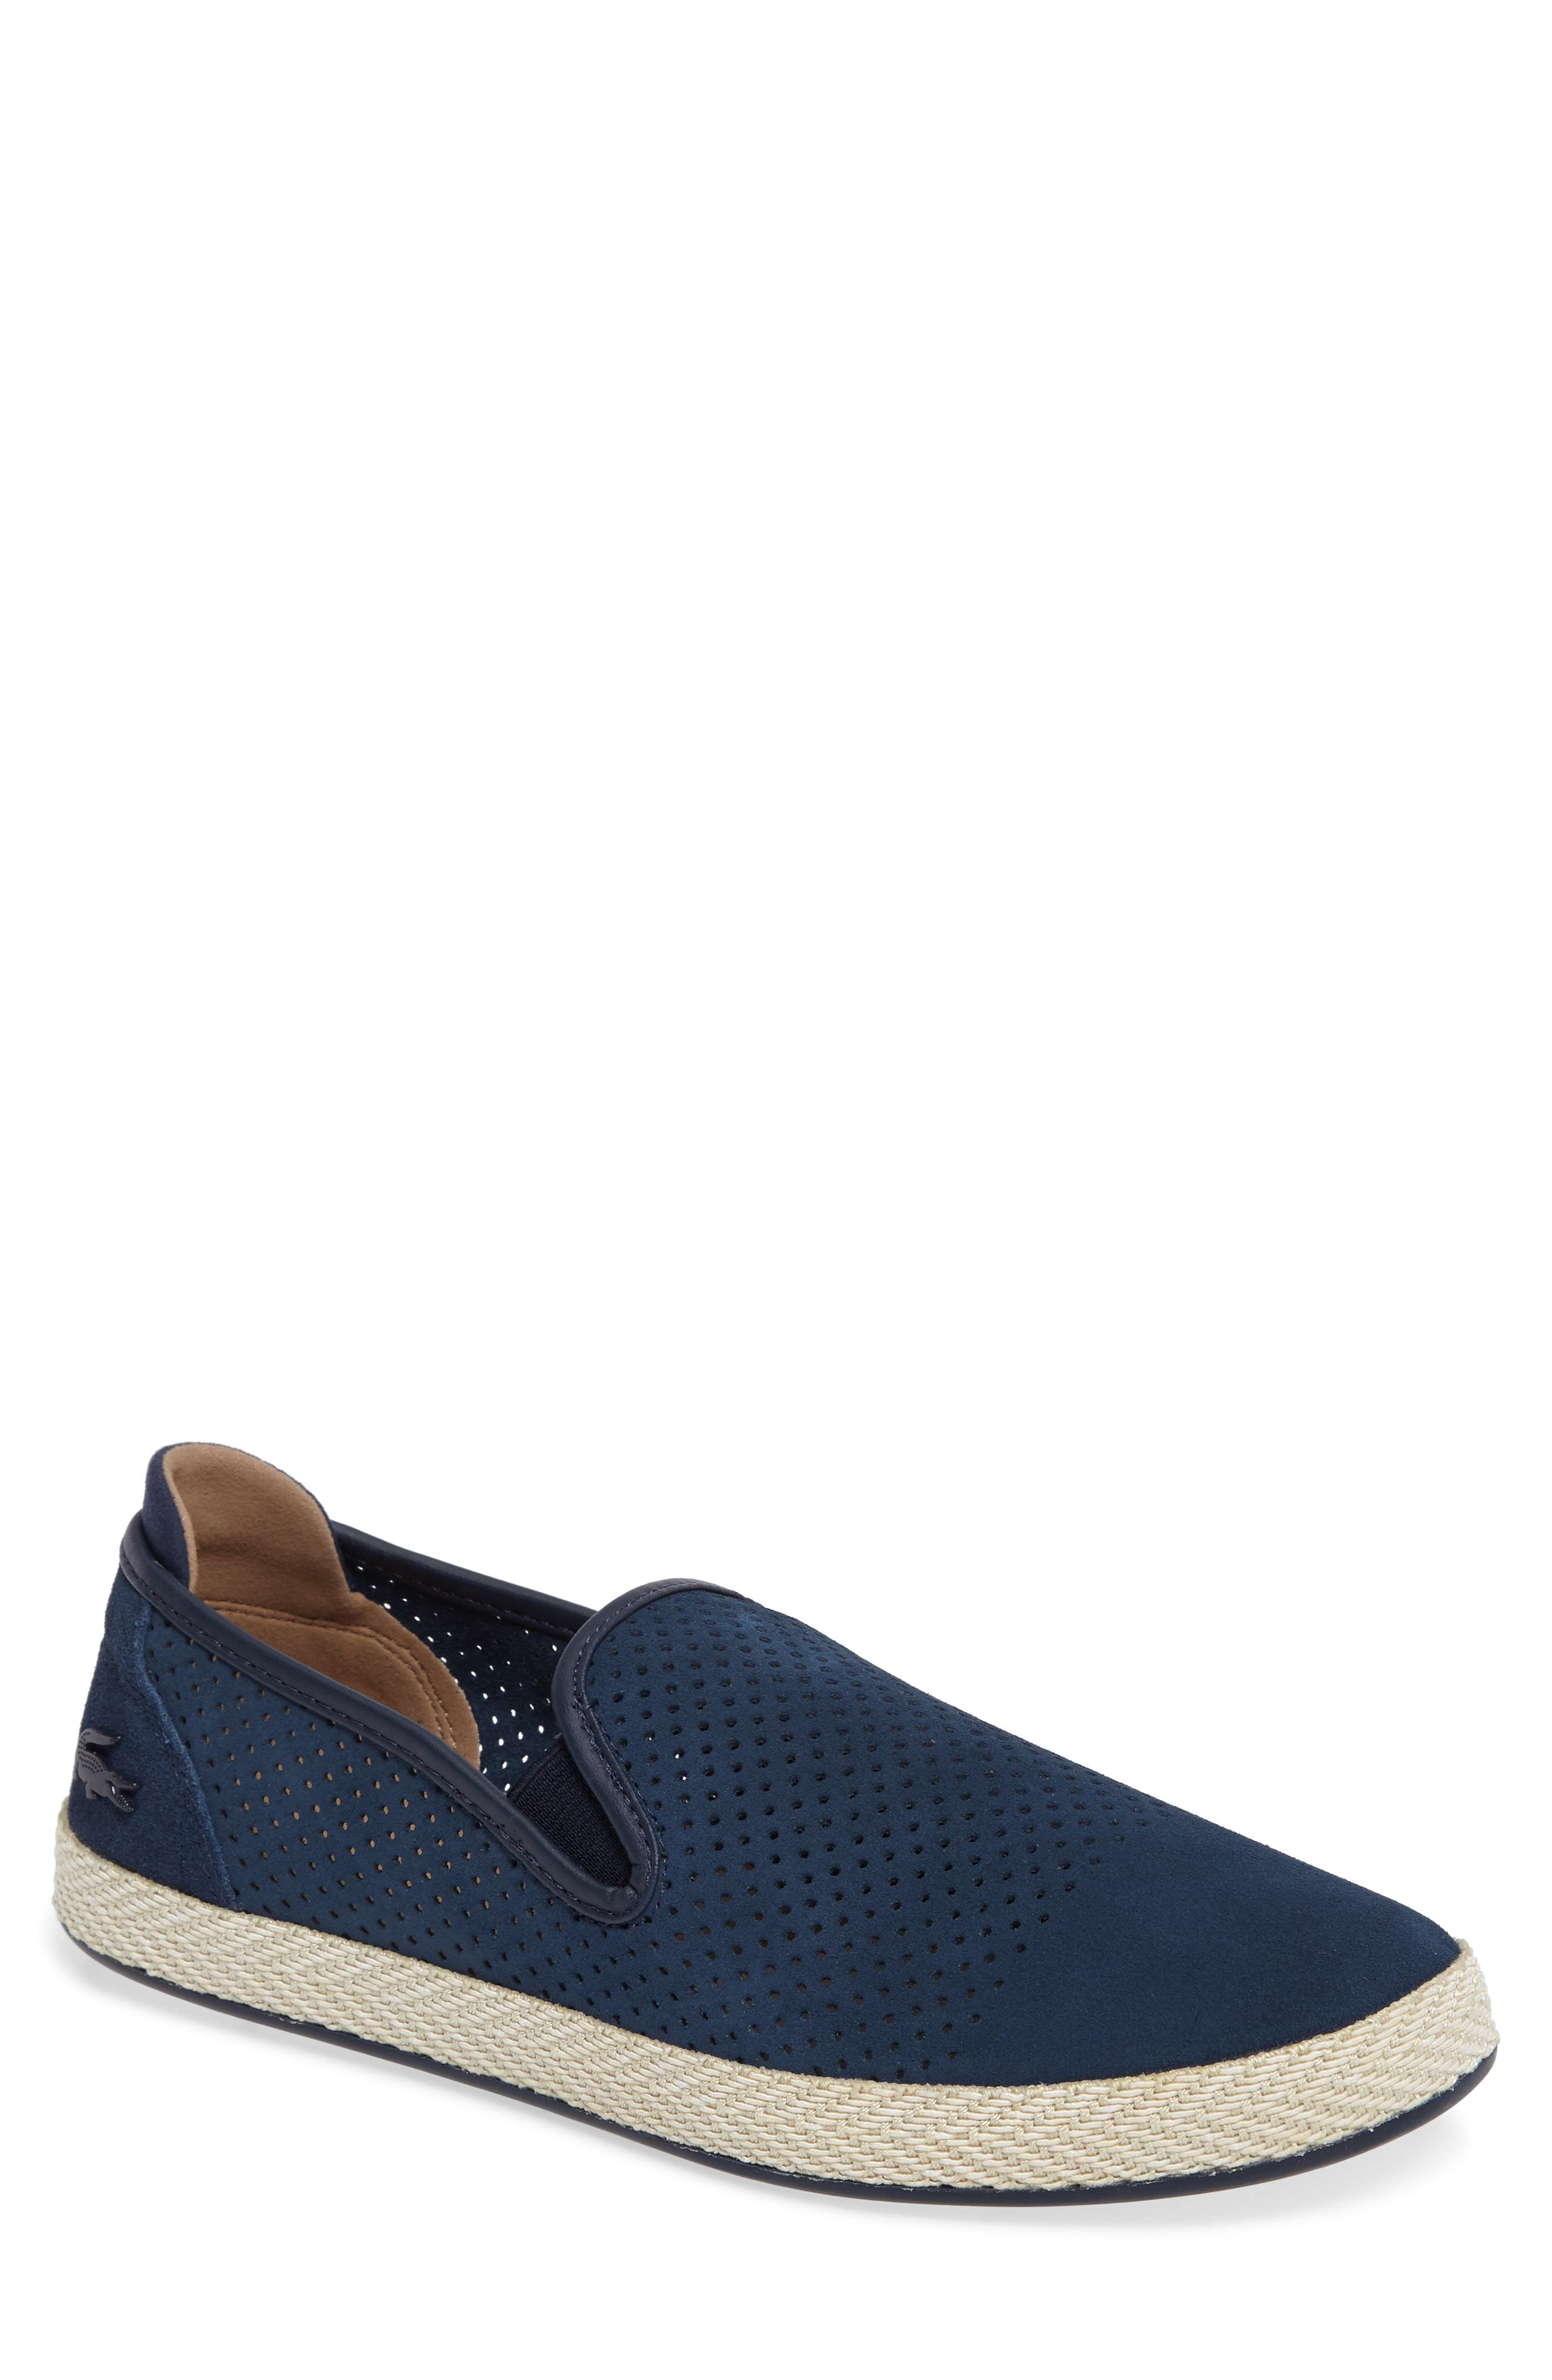 Alternate Image 1 Selected - Lacoste Tombre Slip-On (Men)